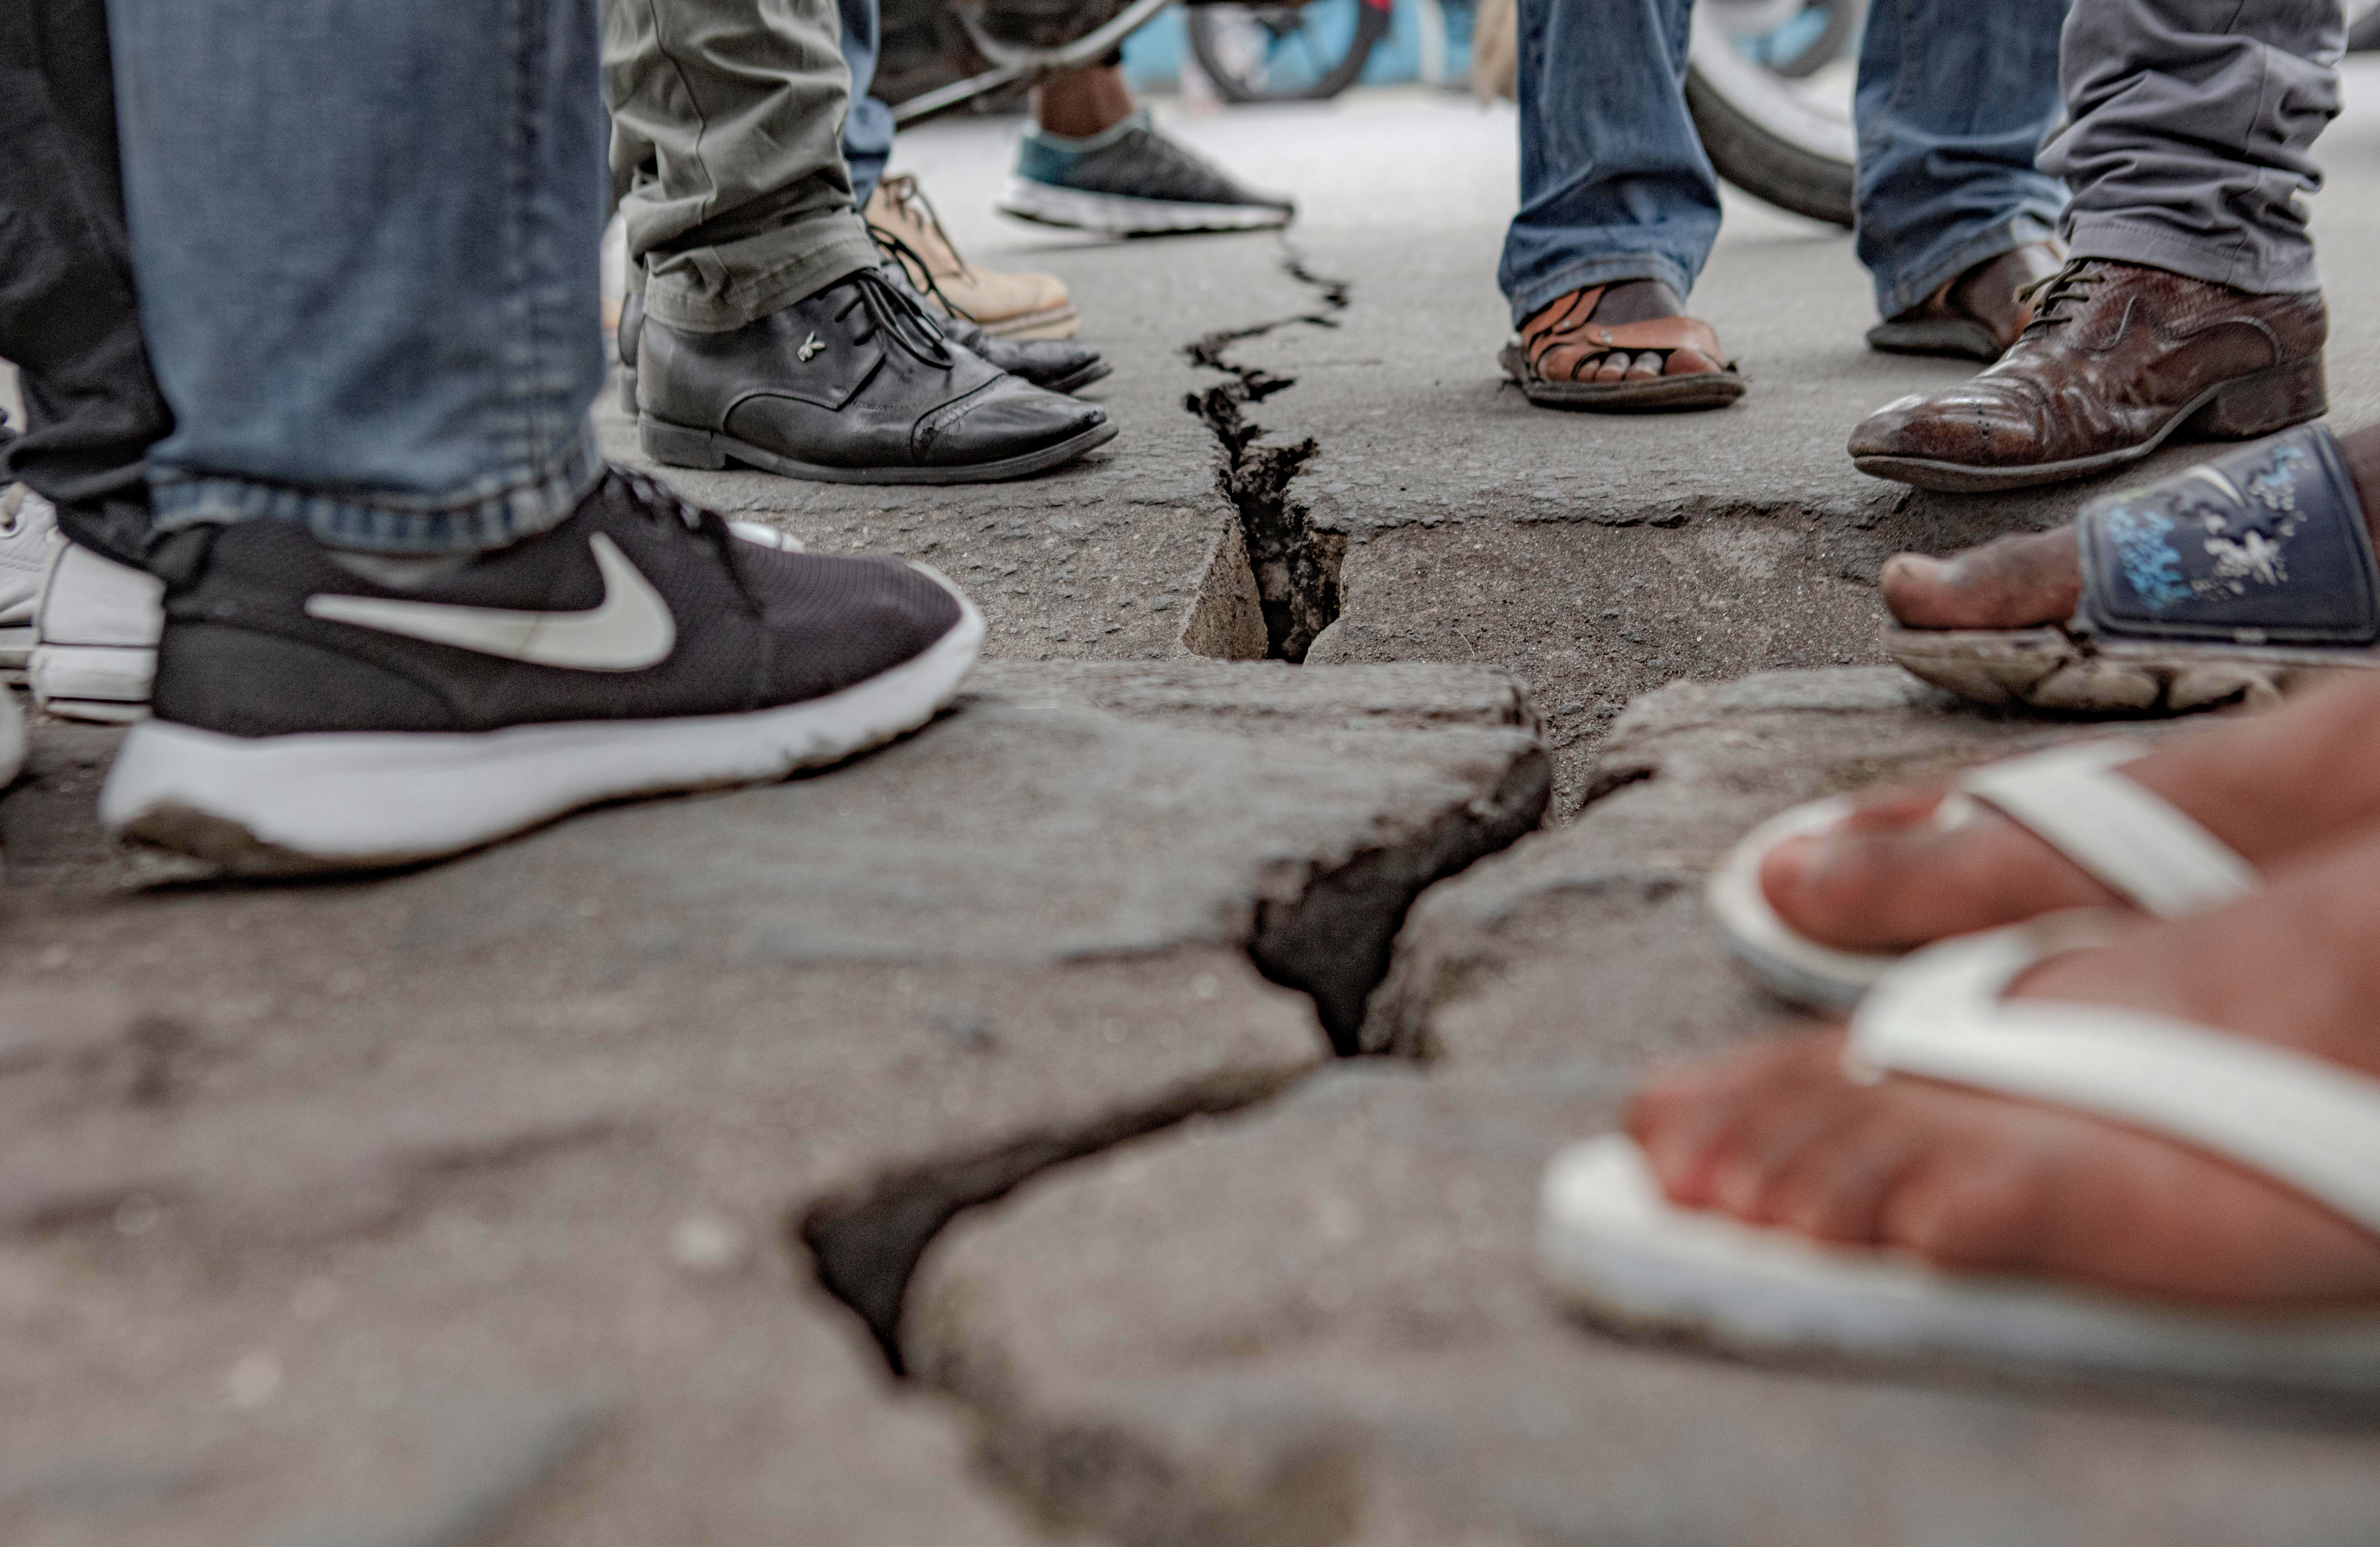 The crack caused by the earthquake in Goma after the volcanic eruption.